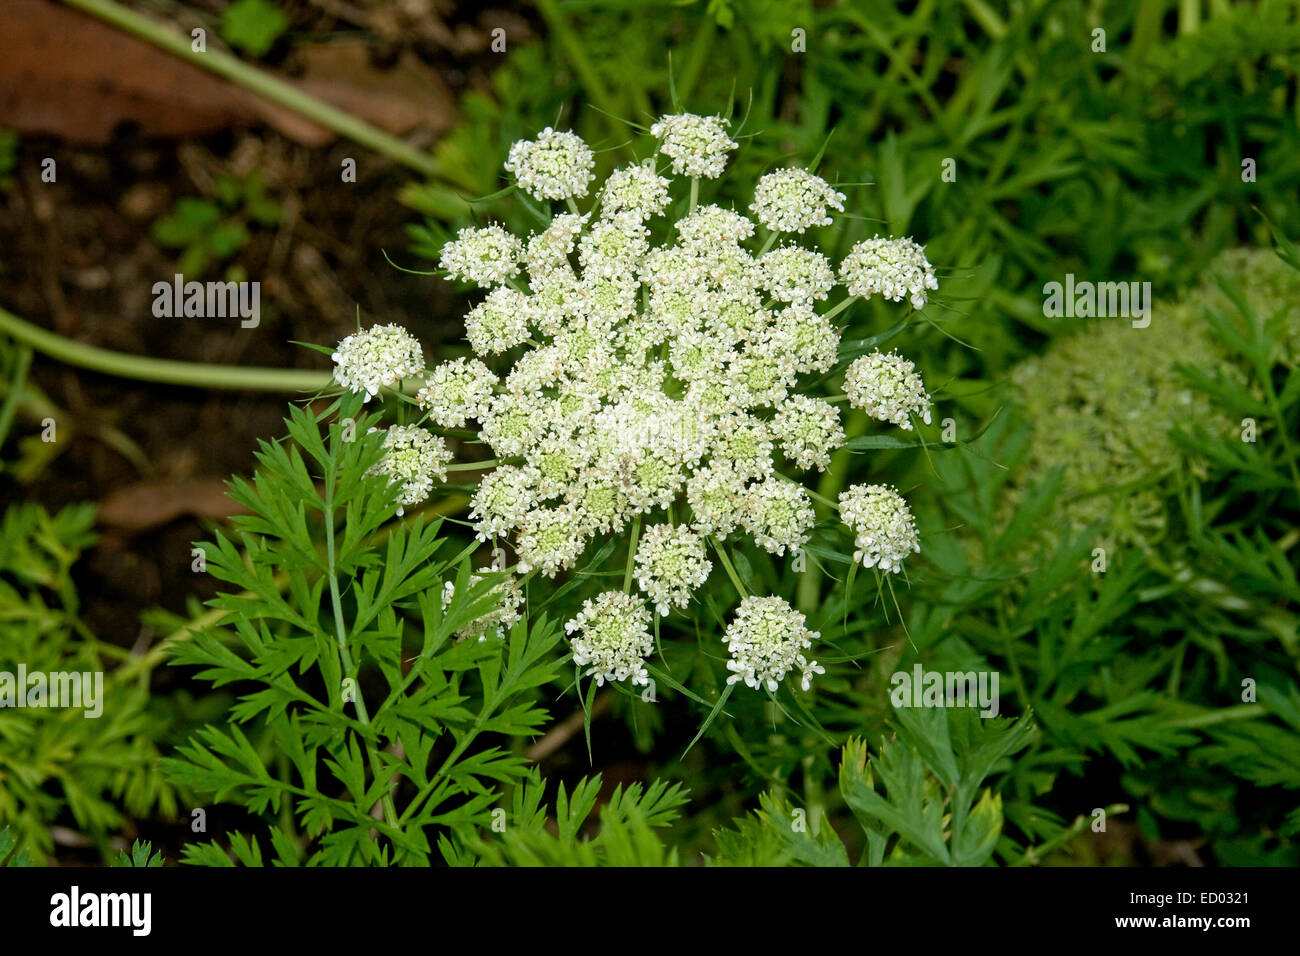 Cluster Of White Flowers And Emerald Green Leaves Of Carrot Plant